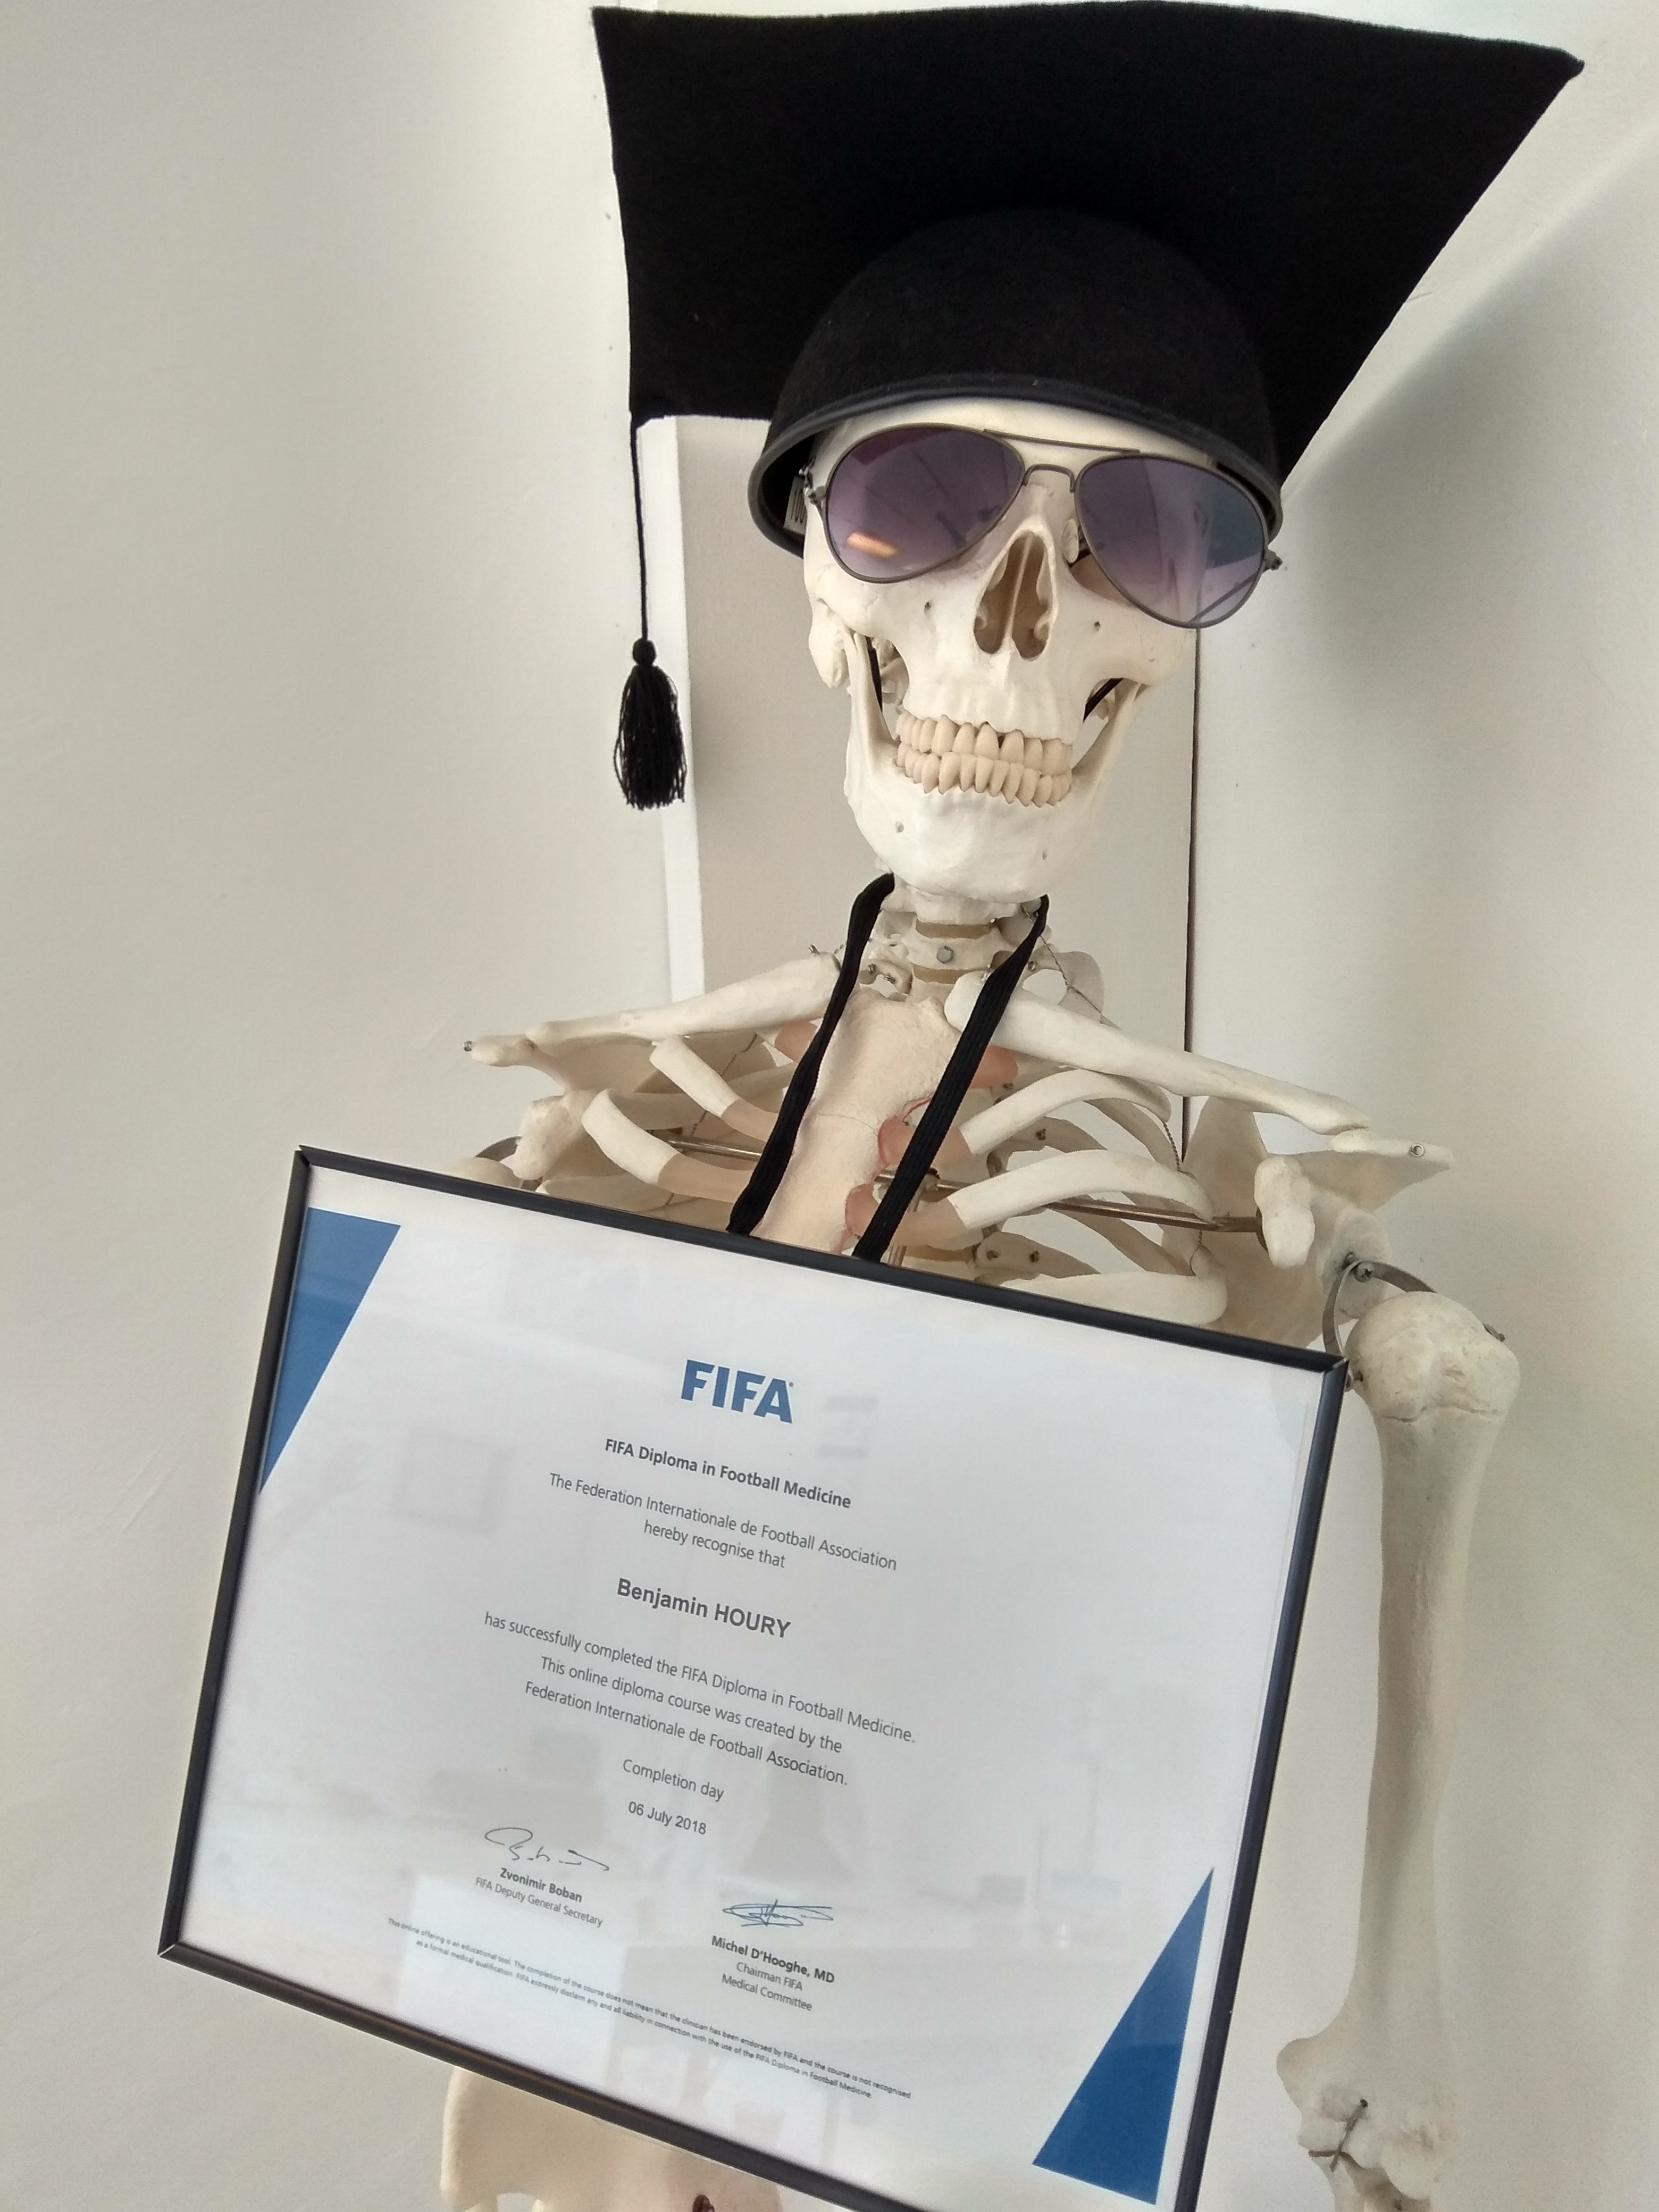 benjamin-houry-ostéopathe-paris-12-diplome-FIFA-federation-internationale-football-docteur-diplome-medecine-football-osteopathe-75012-urgence